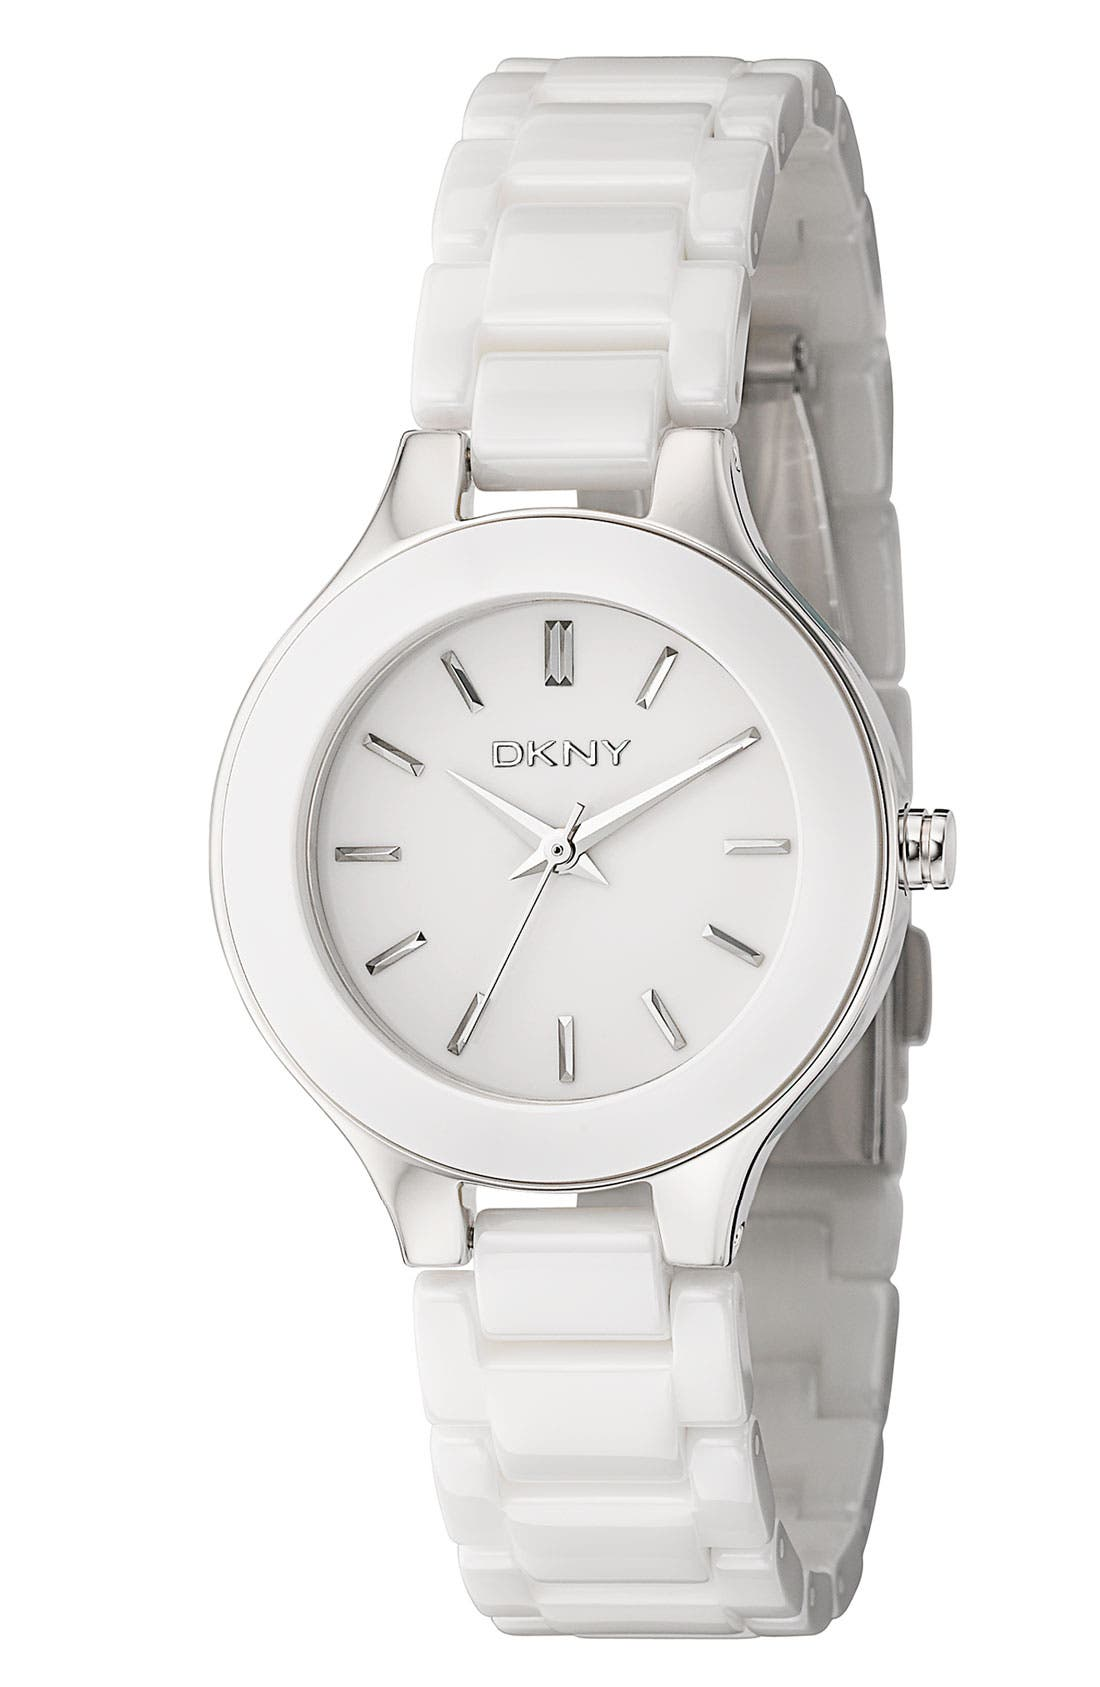 Main Image - DKNY 'Chambers' Ceramic Bracelet Watch, 30mm